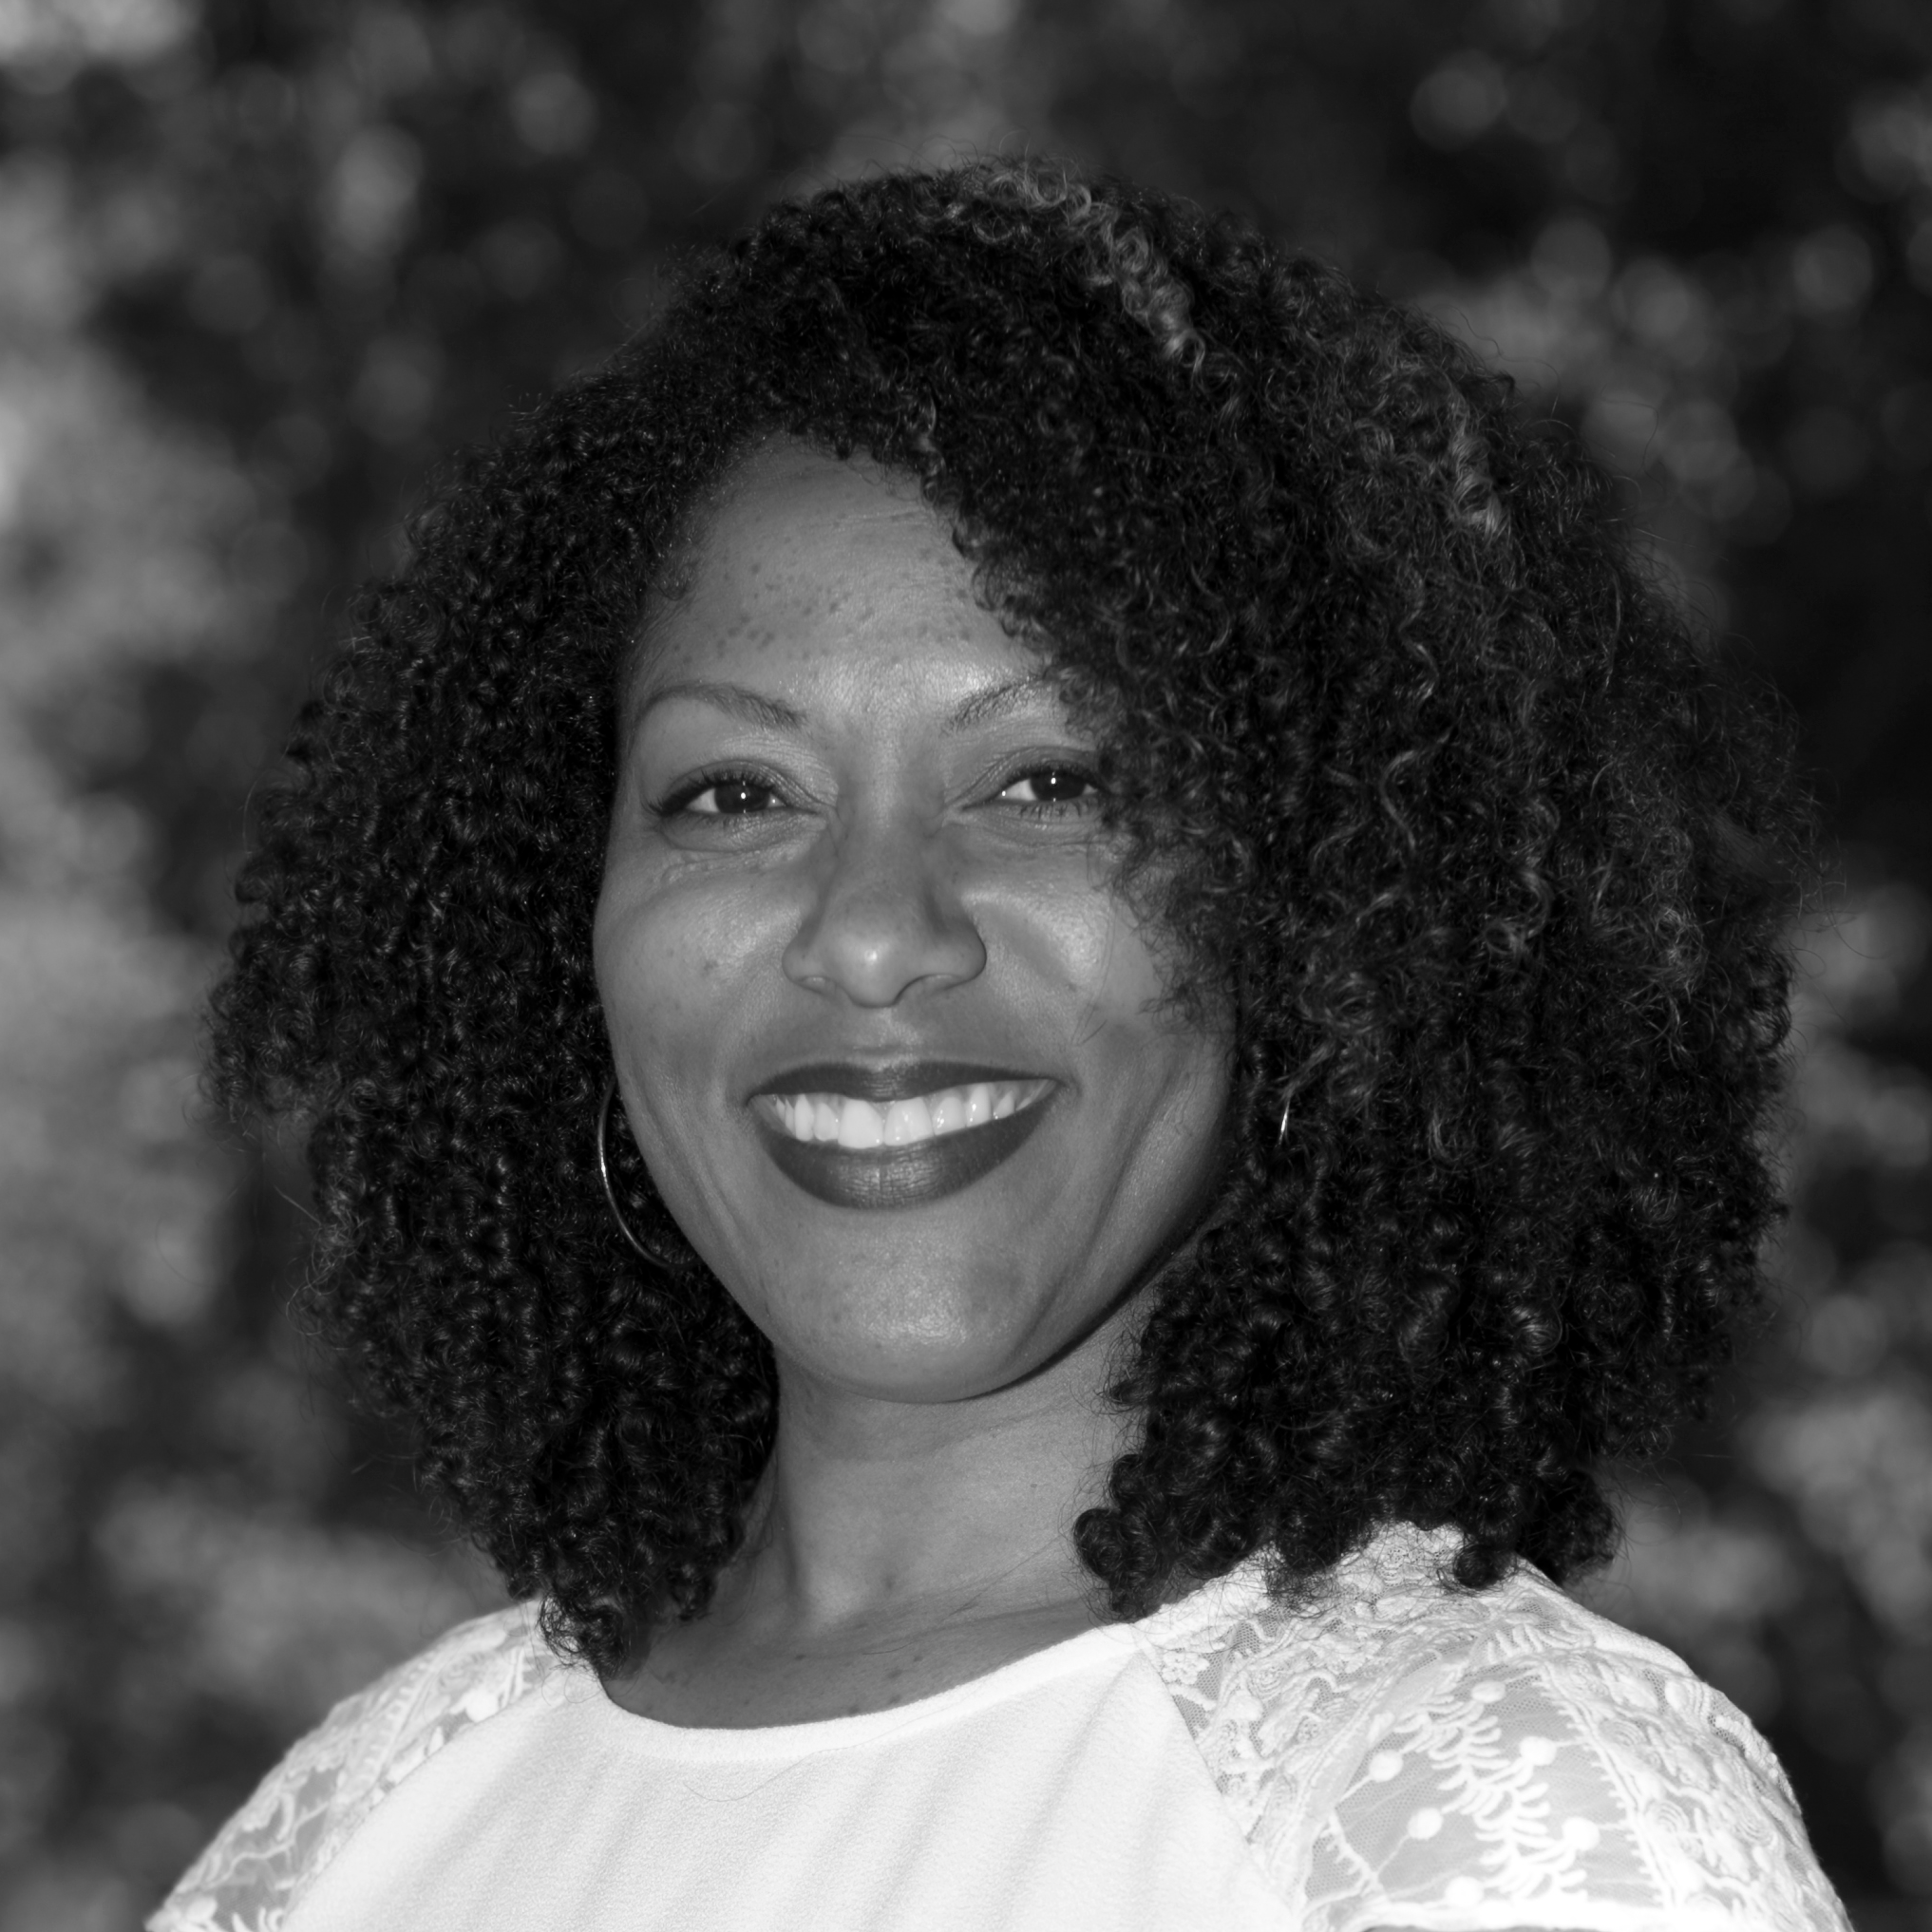 Donja Robinson - Administrative Assistant    drobinson@bayareasmacna.org   Donja joined Bay Area SMACNA in the Summer of 2018. She will lead our Intern Program, coordinate our Women in Construction group and help in various other capacities. Donja loves interacting with others and traveling with her husband. In her free time, she enjoys building dollhouses to-scale and outdoor activities like cycling.